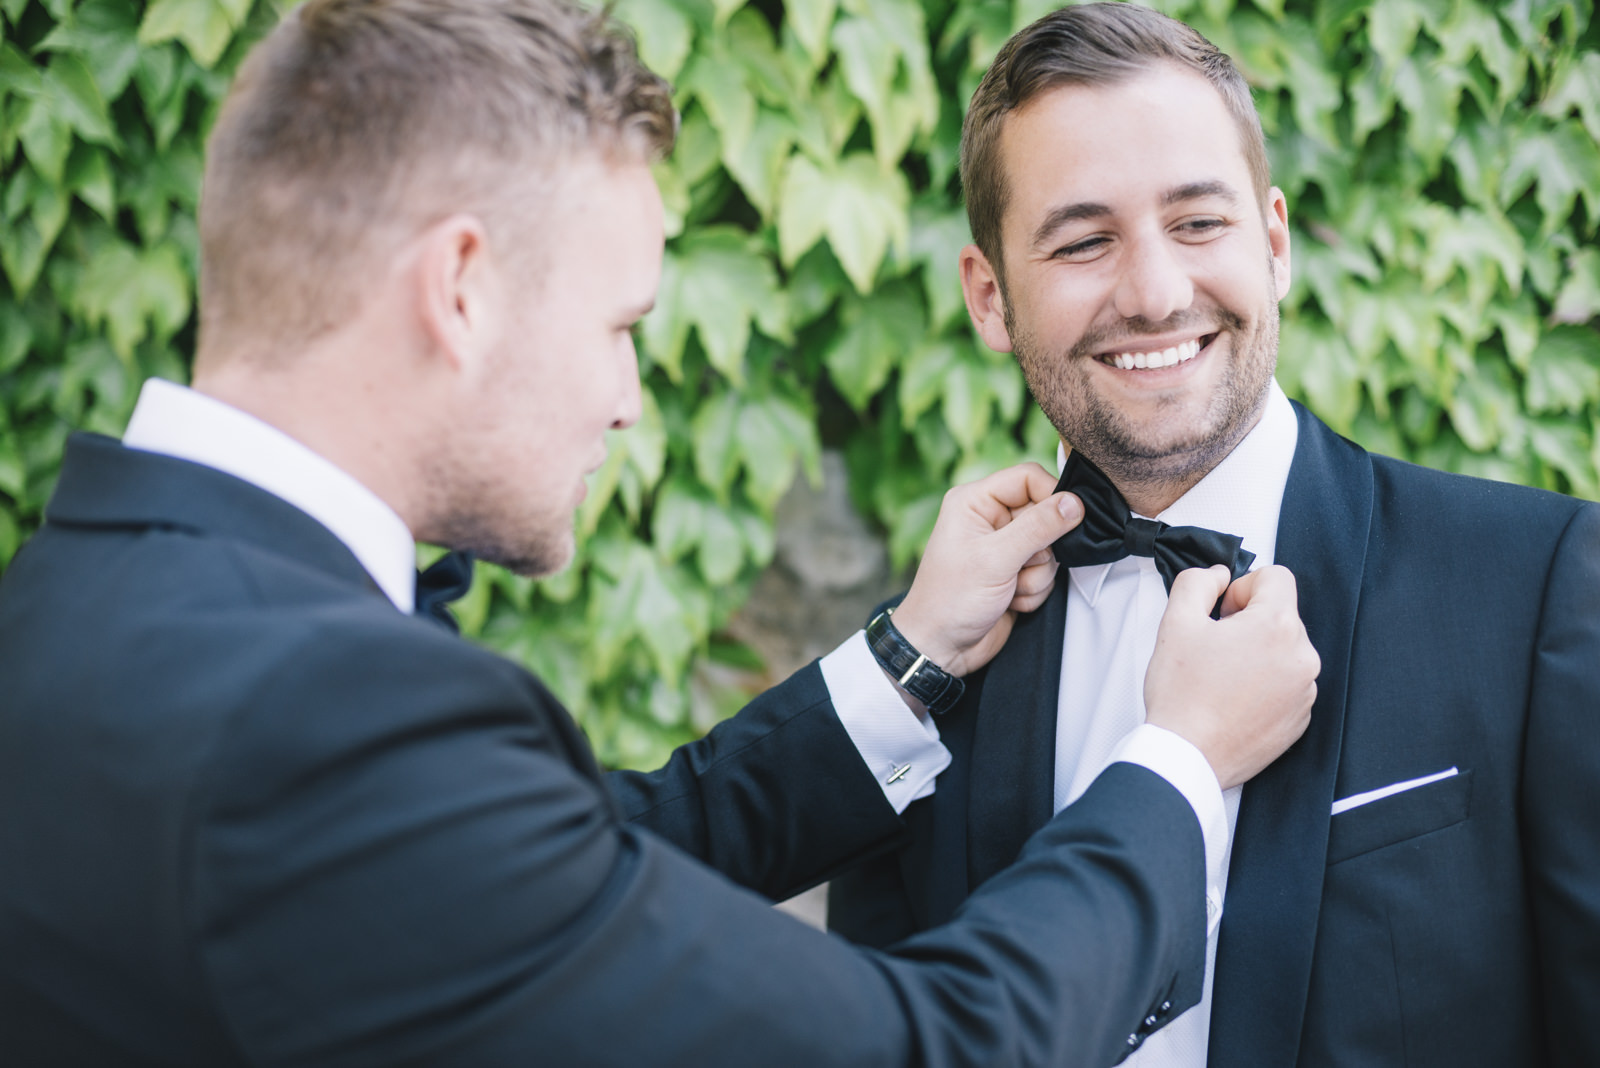 the best man adjusting the groom's bow tie